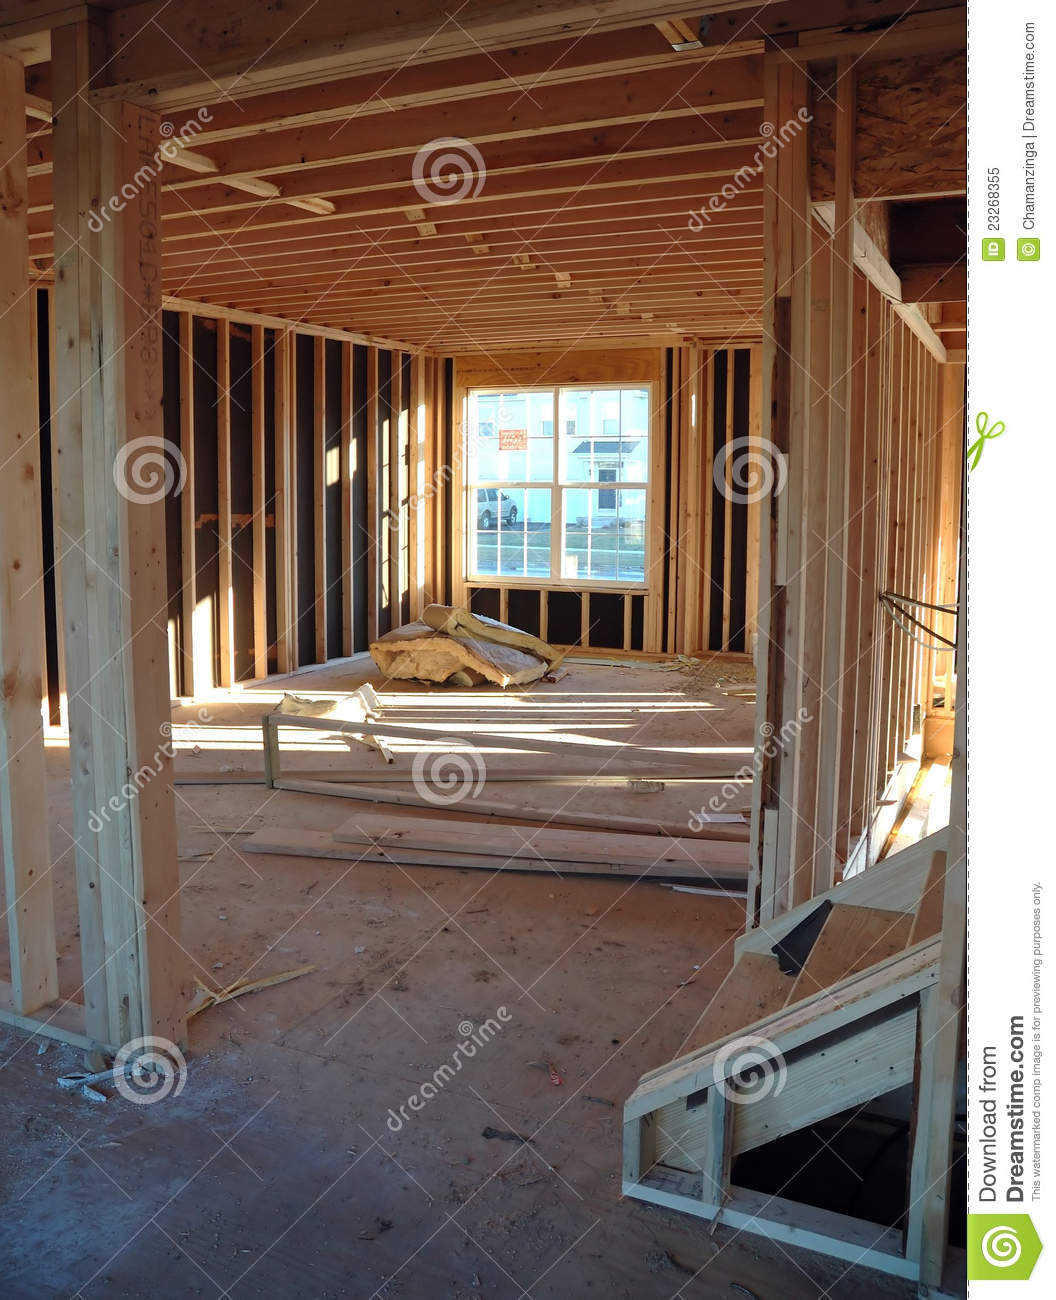 Construction de chambre photo libre de droits image - Construction chambre de culture ...